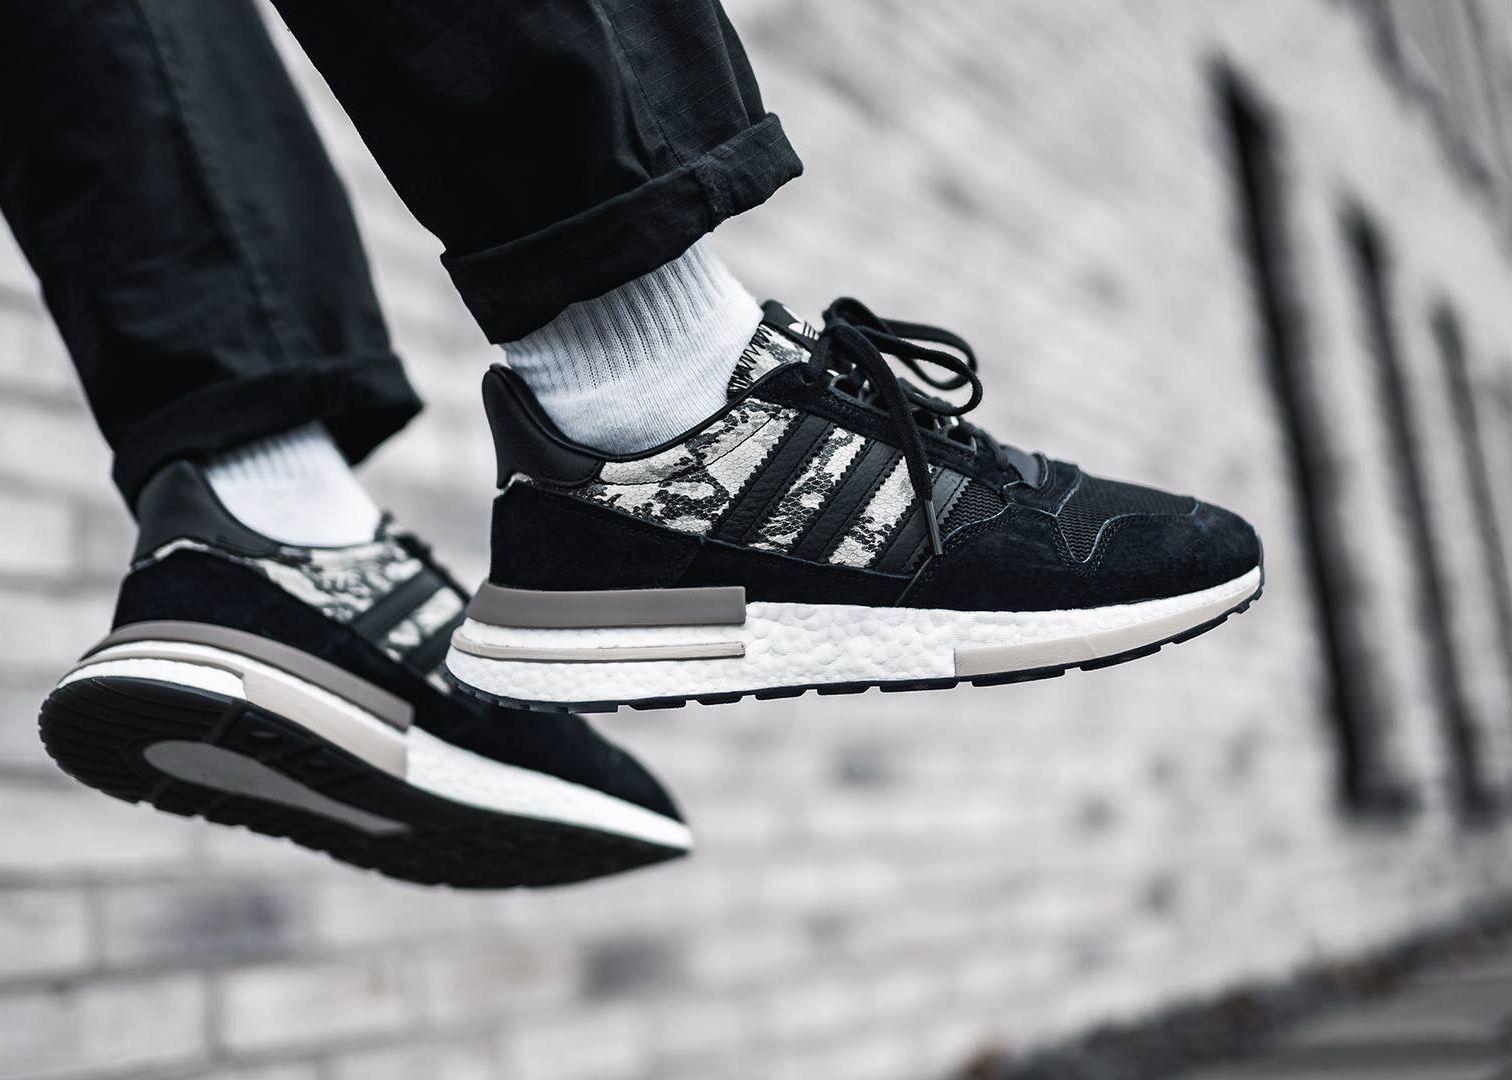 separation shoes 8616b bbbac adidas Originals ZX 500 RM | S in 2019 | Adidas, Adidas zx ...